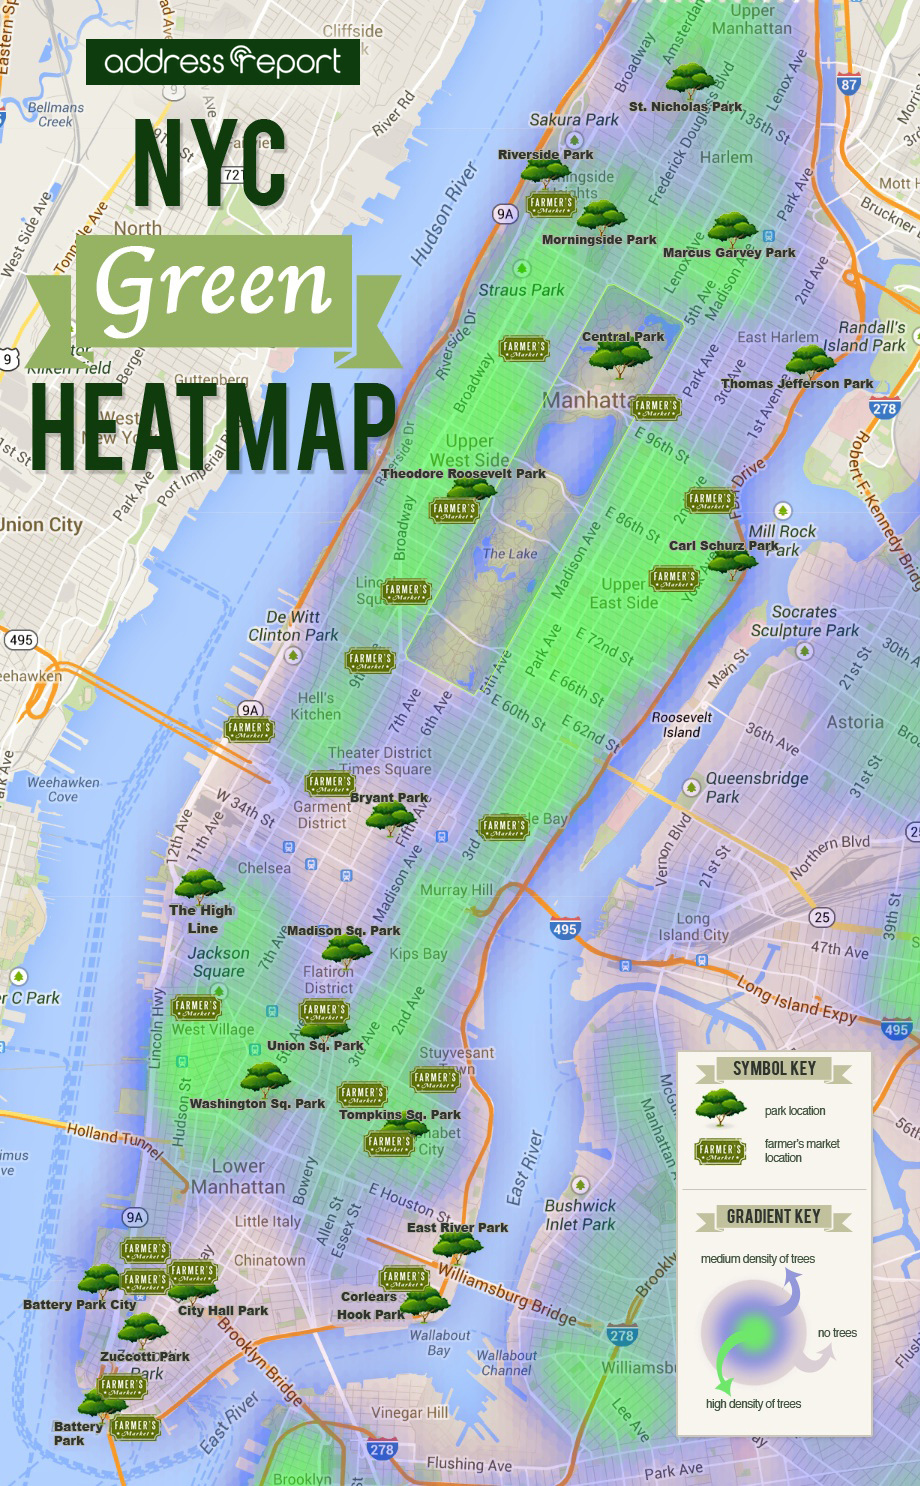 Nyc Green Heatmap Manhattan Trees Parks And Farmers Markets